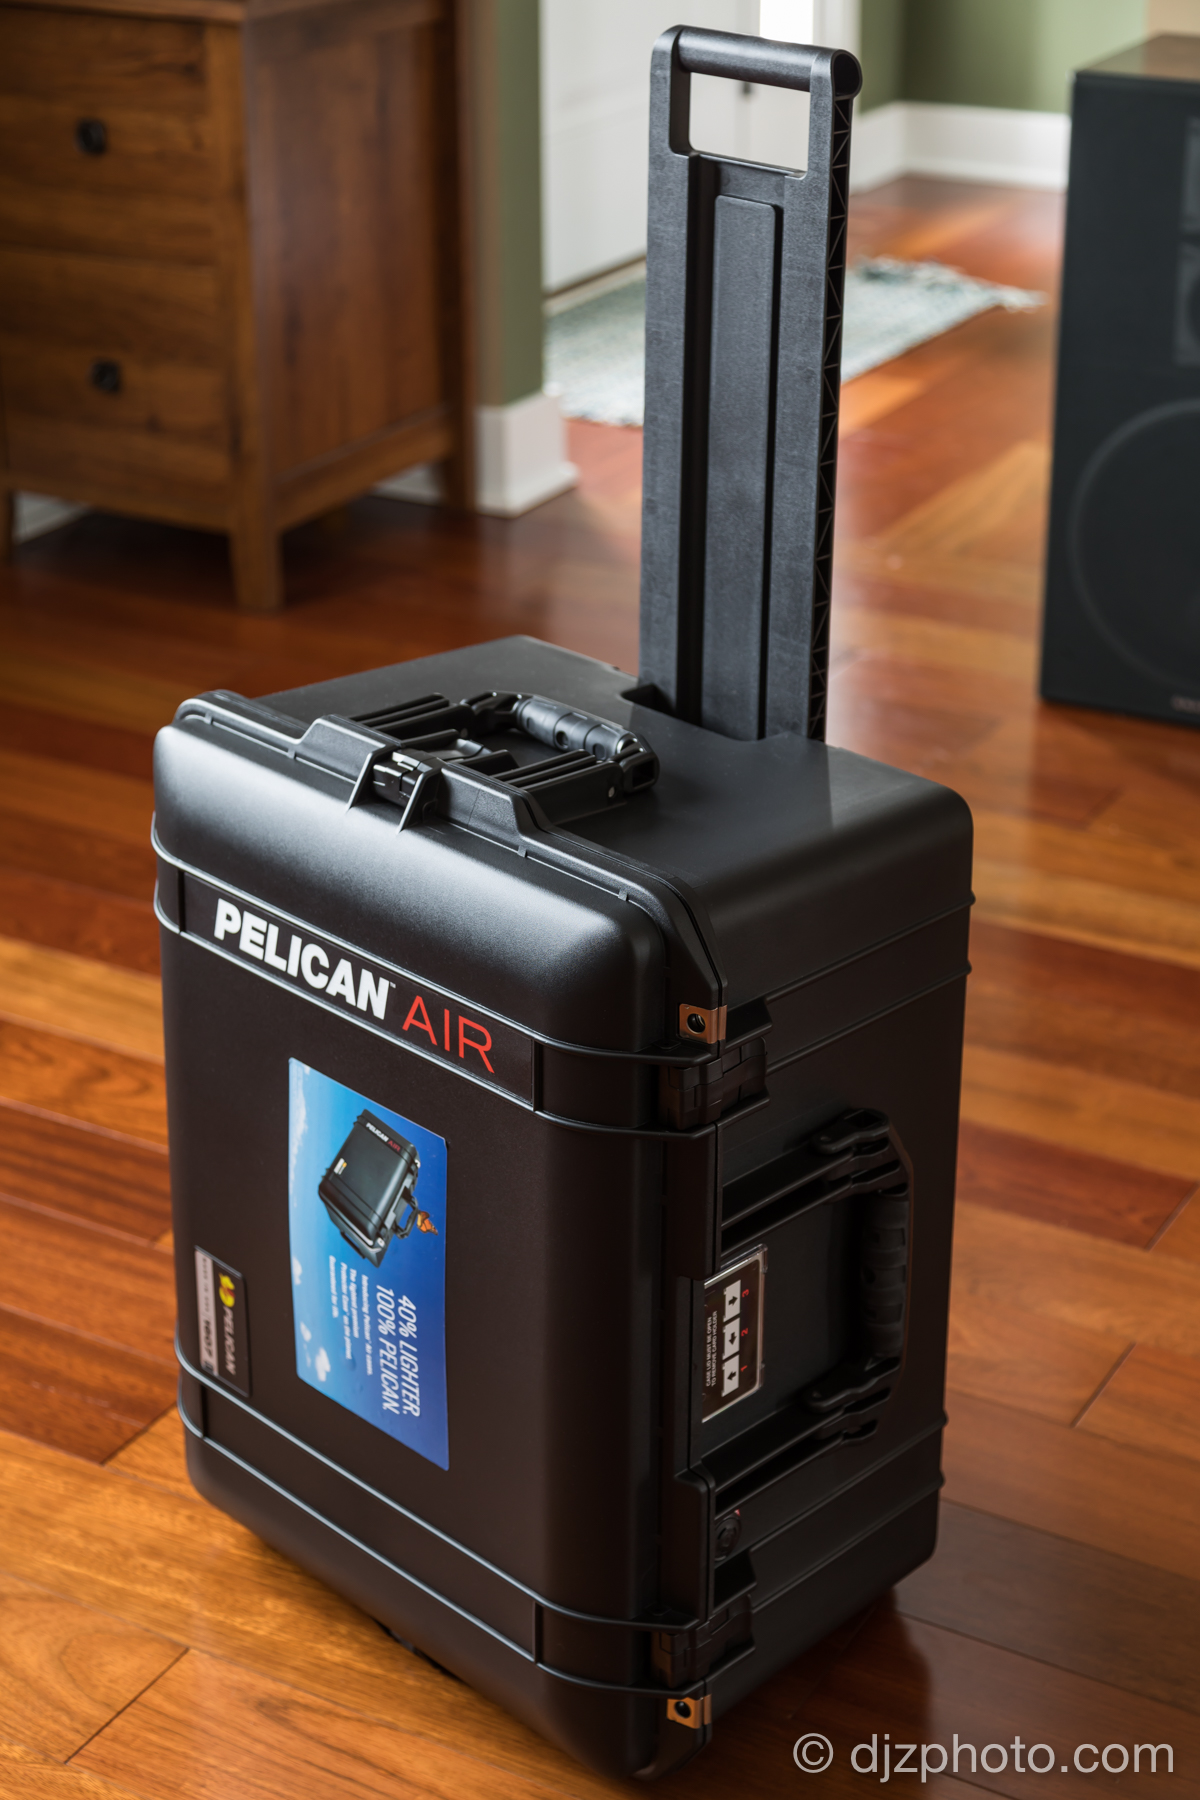 Pelican Air 1607 Protector Case Review